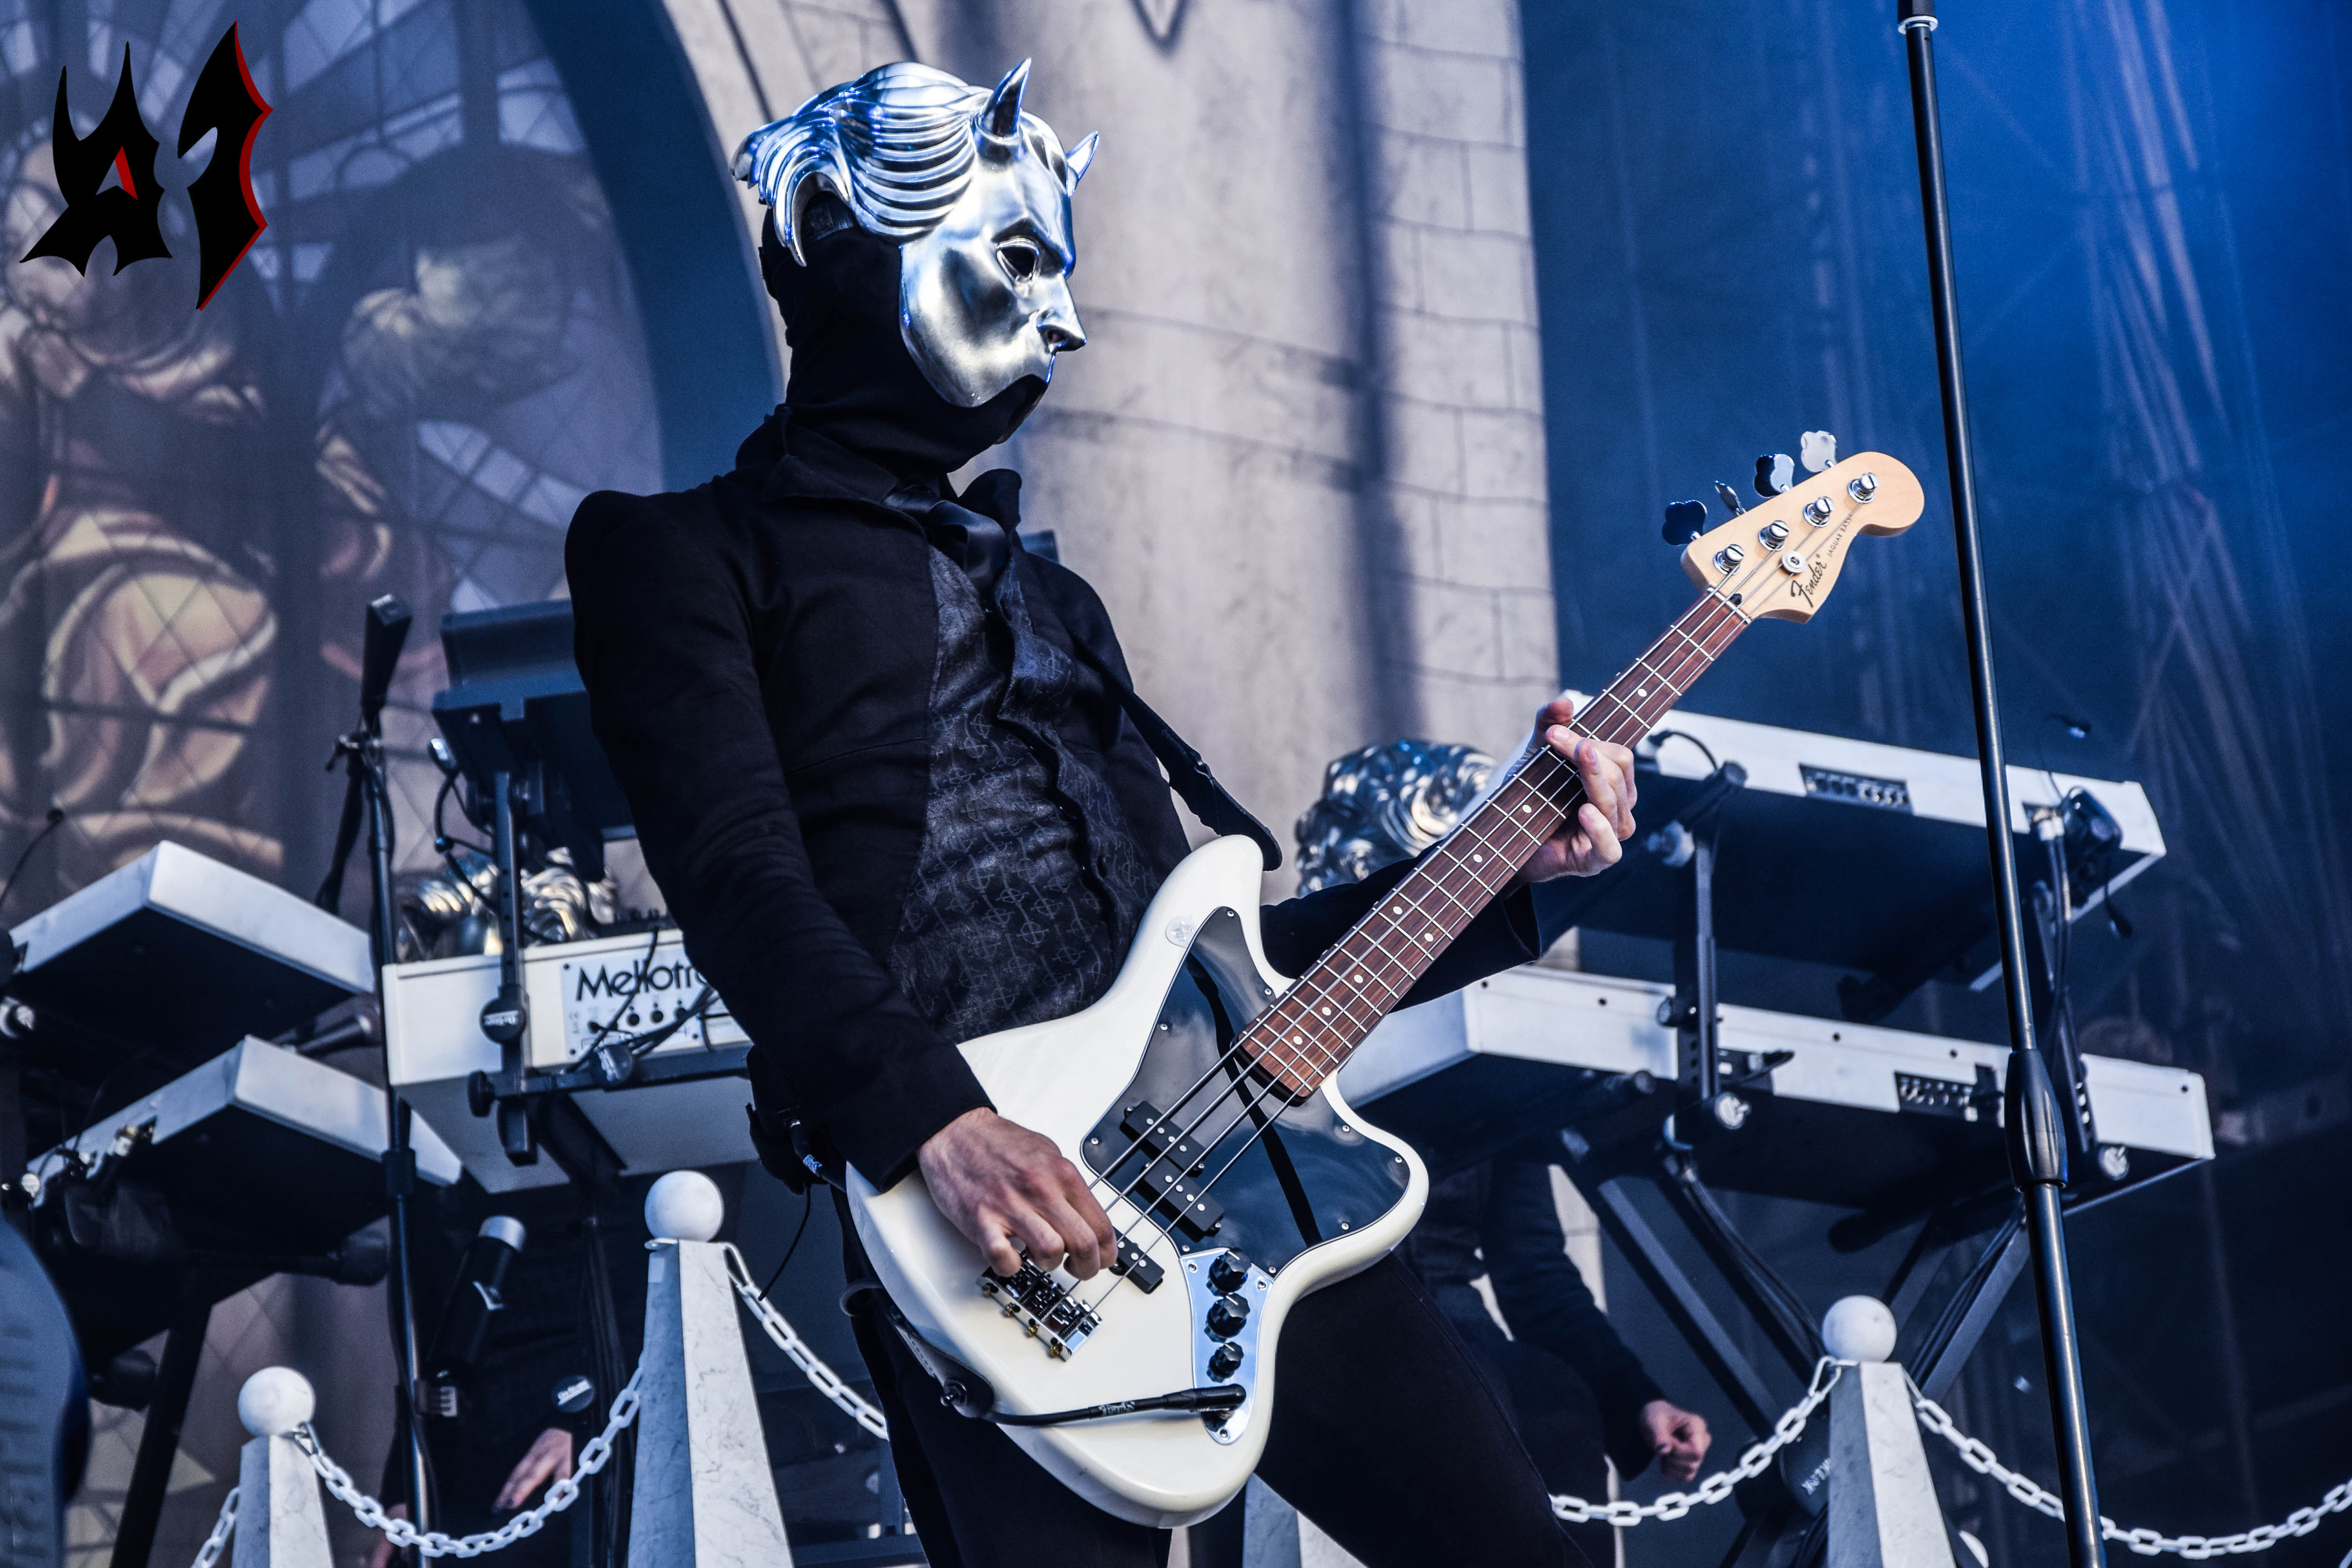 Donwload 2018 – Day 1 - Ghost 14